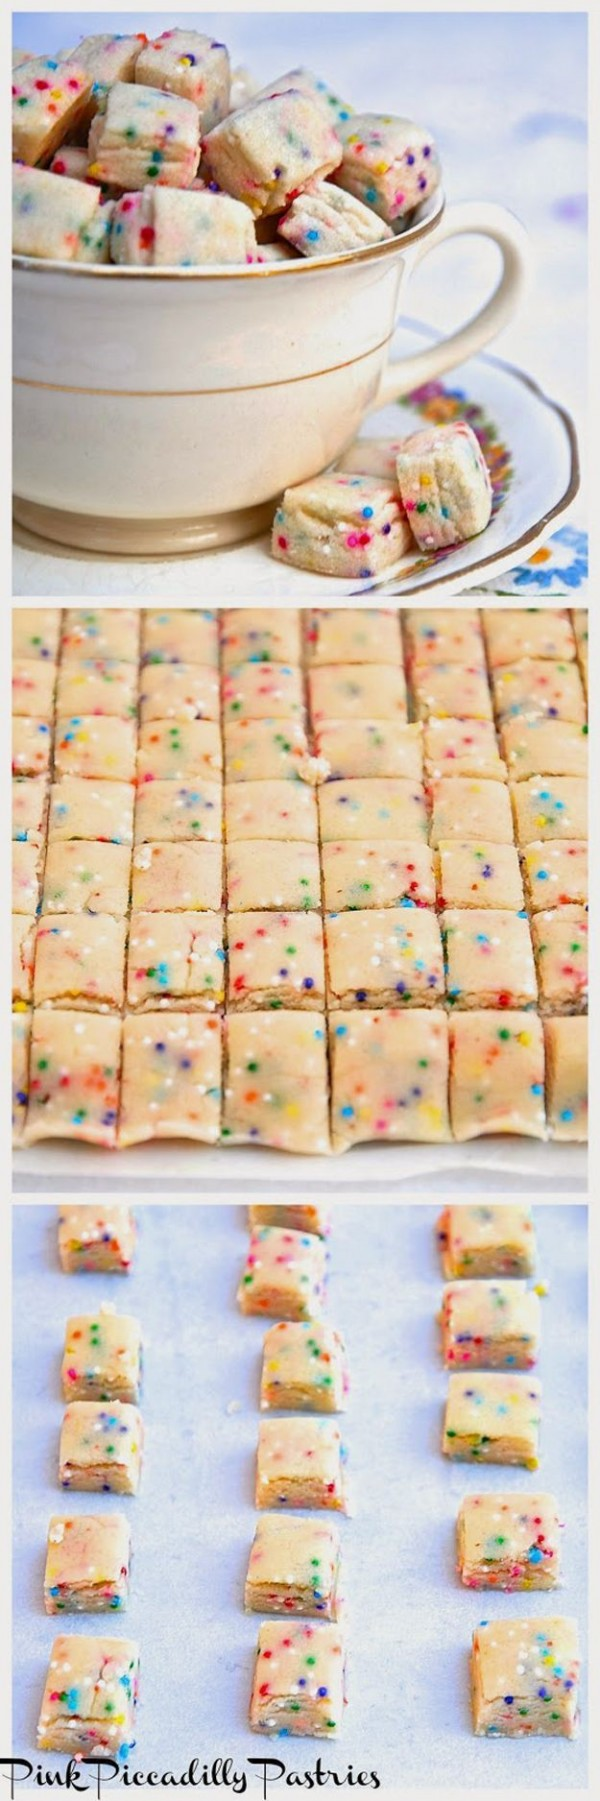 confeti snacks